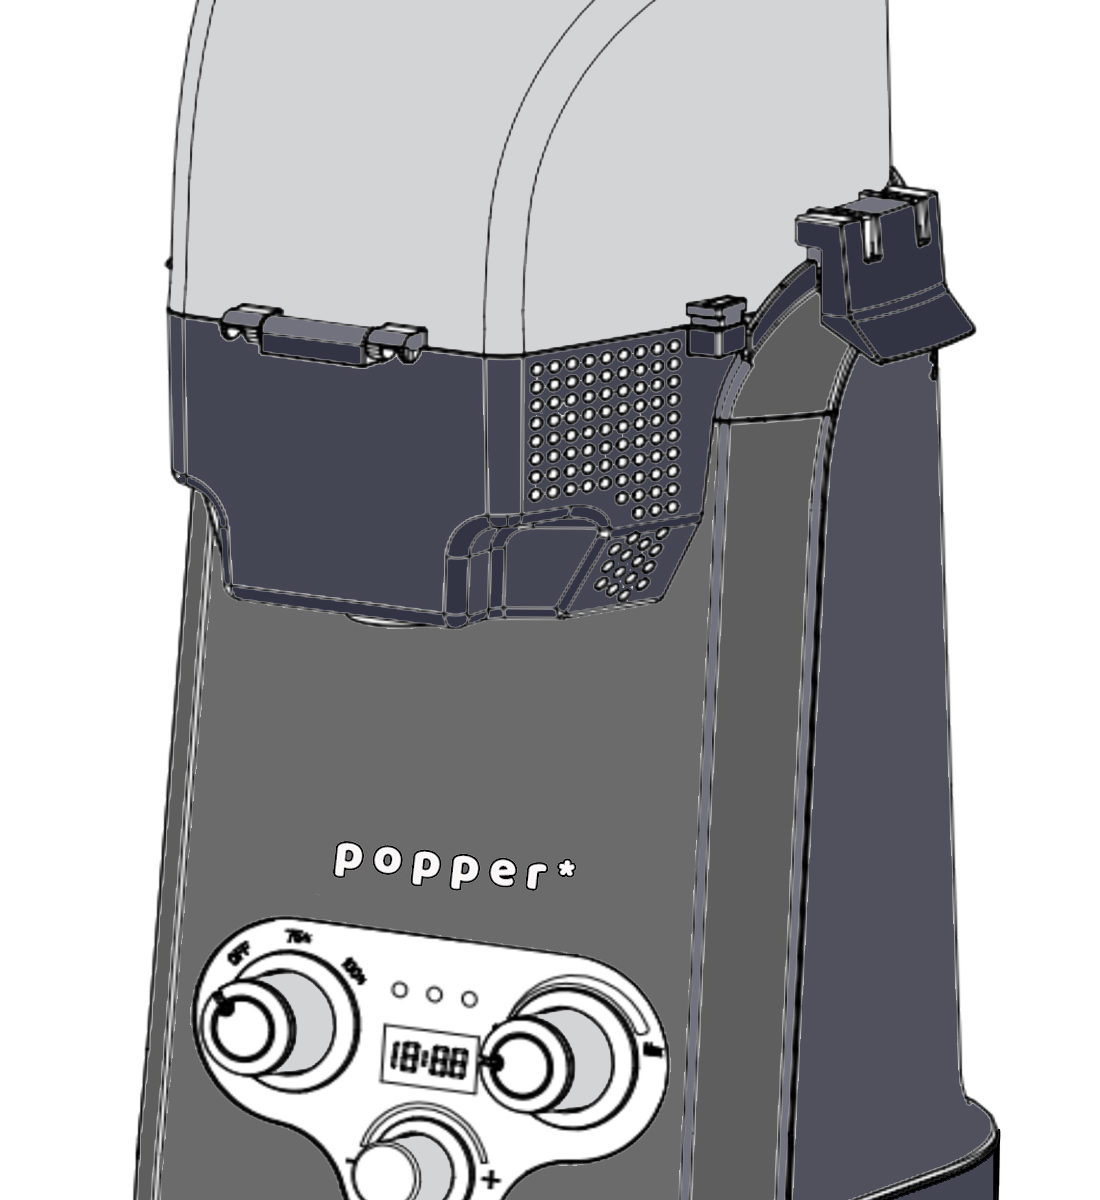 popper coffee roaster line art